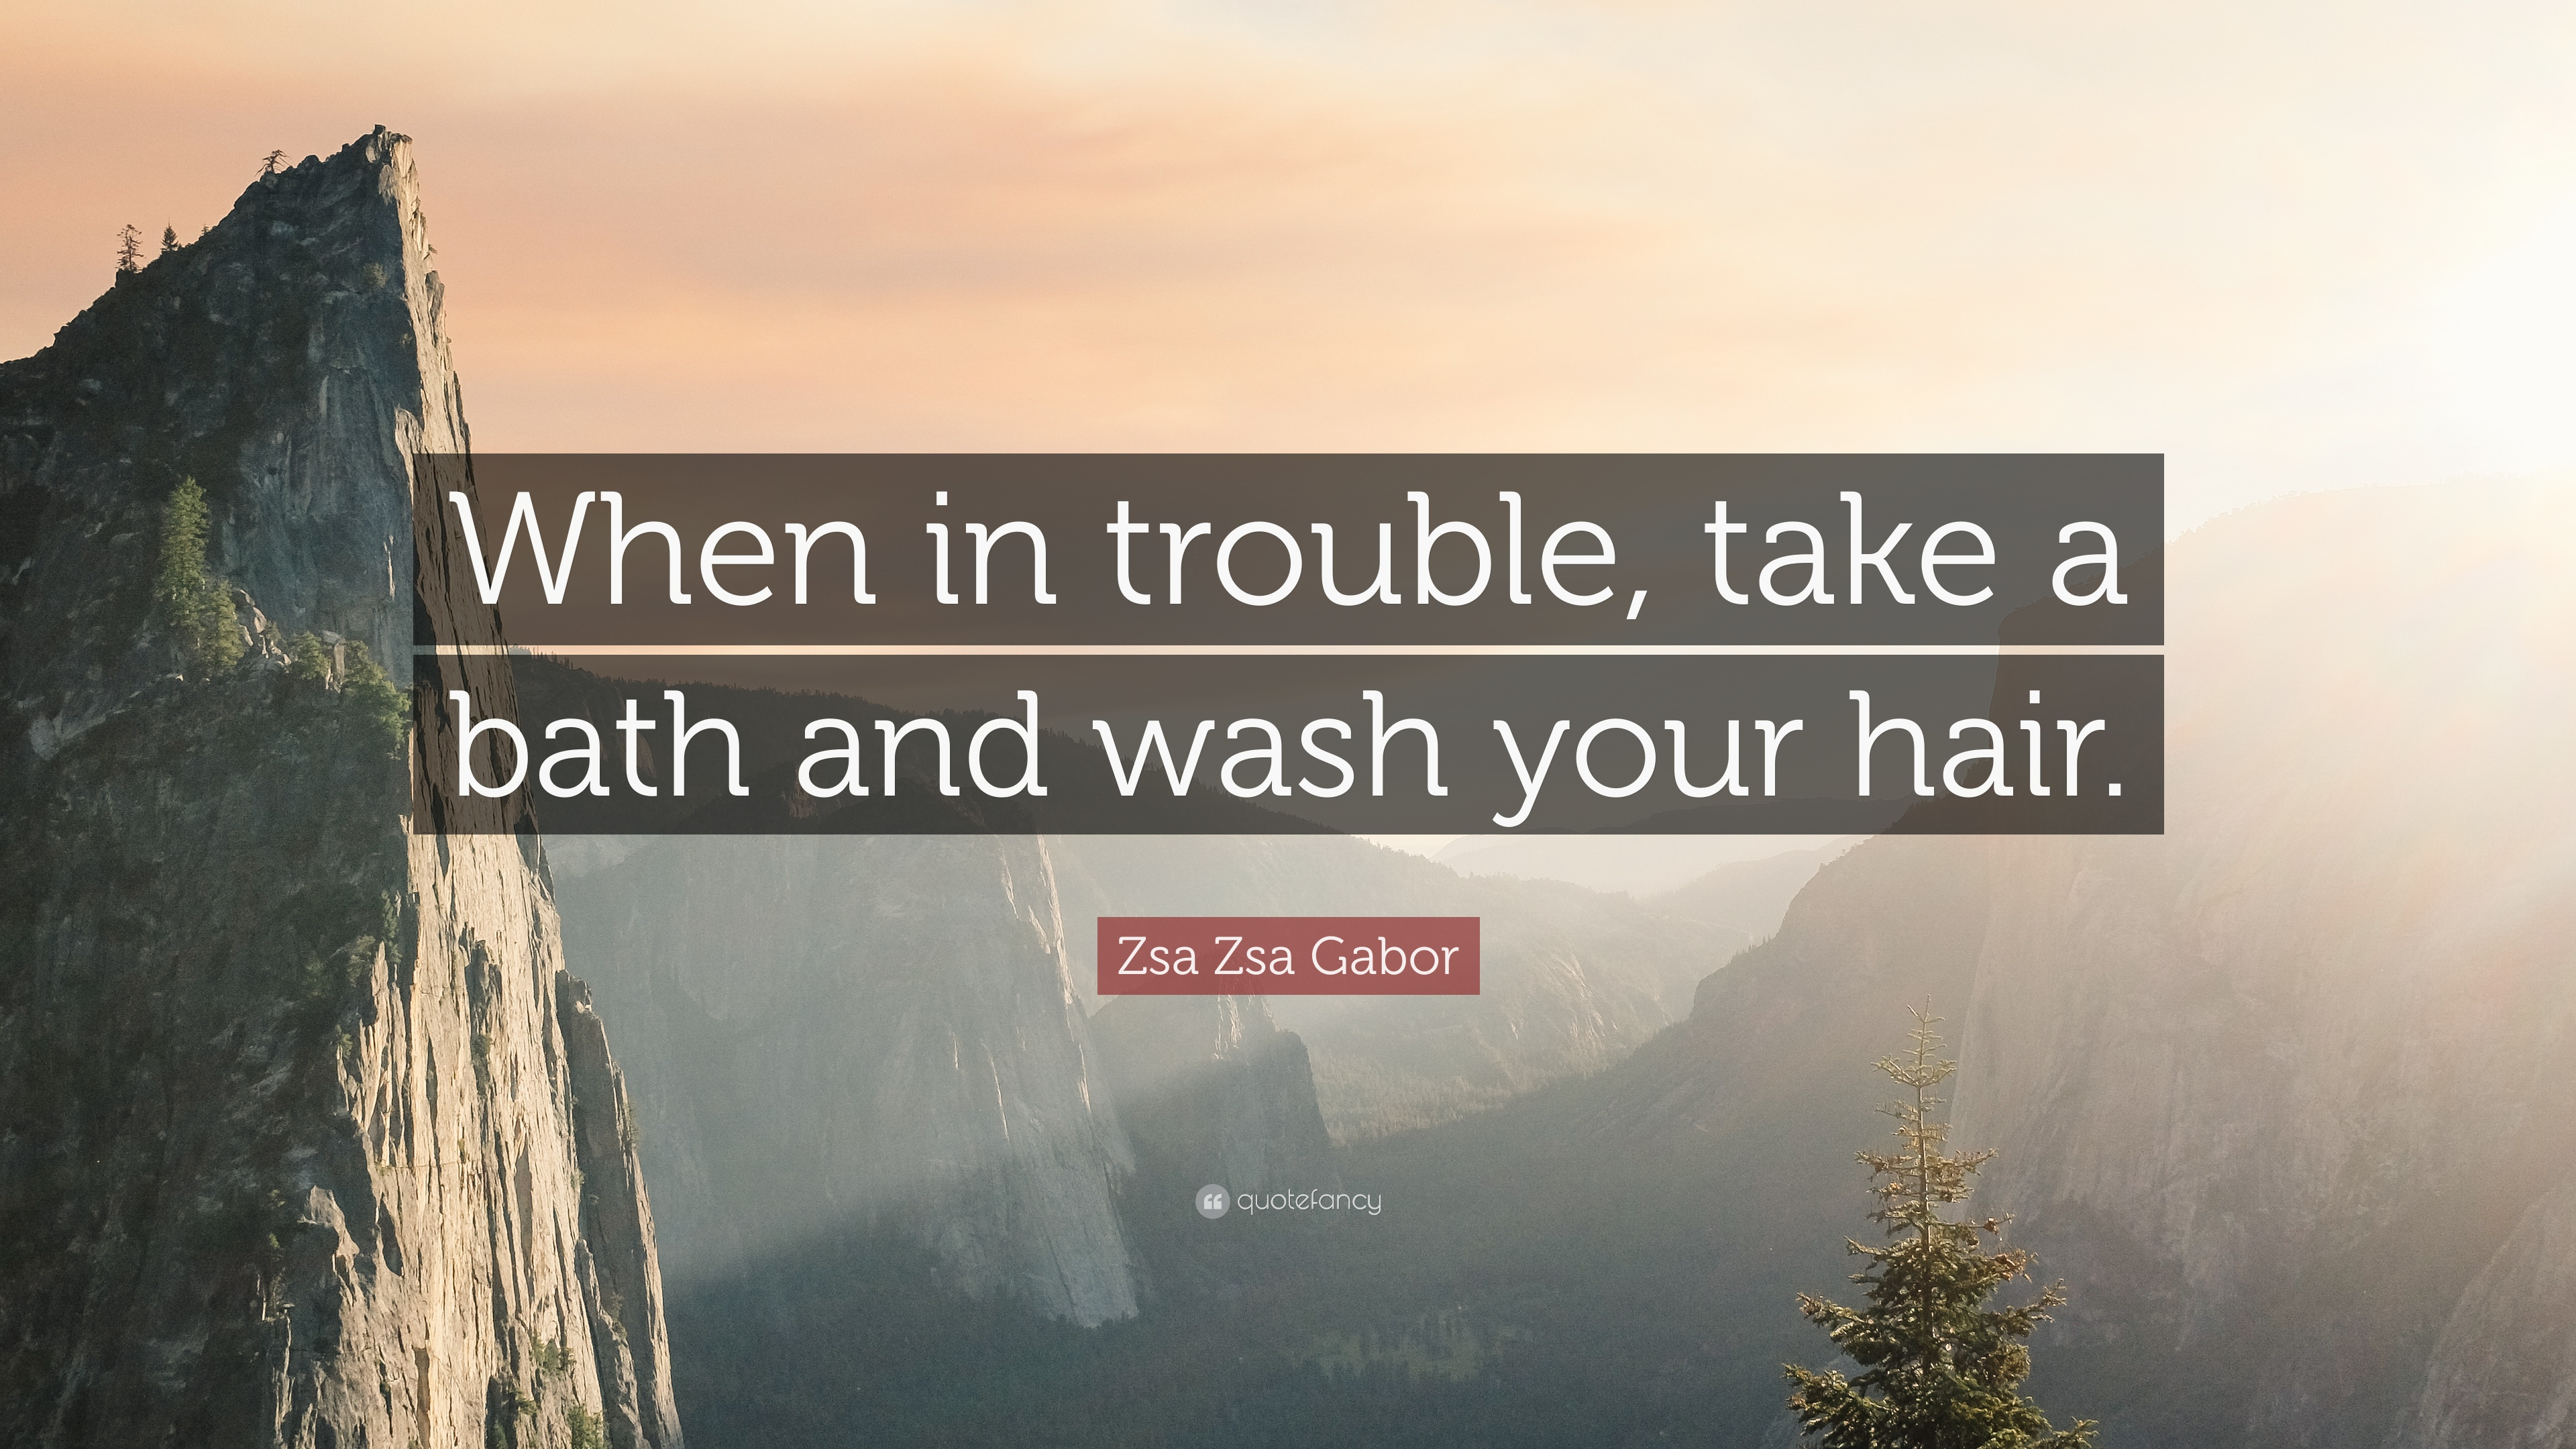 Zsa Zsa Gabor Quotes Fair Zsa Zsa Gabor Quotes 45 Wallpapers  Quotefancy